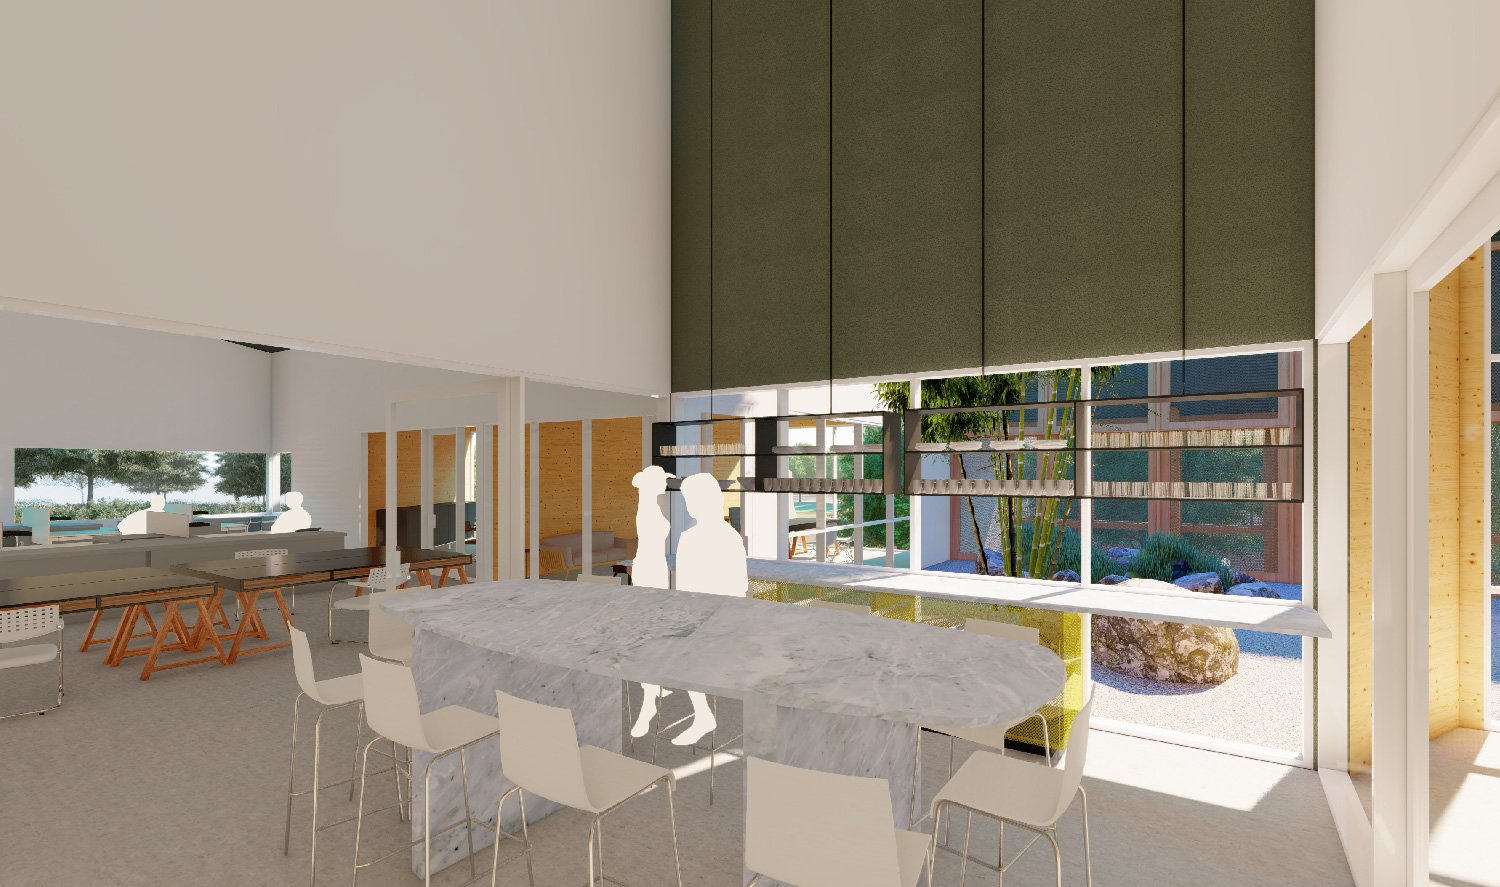 Interior spaces have equitable access to views, natural light and ventilation. University of Arkansas Community Design Center}